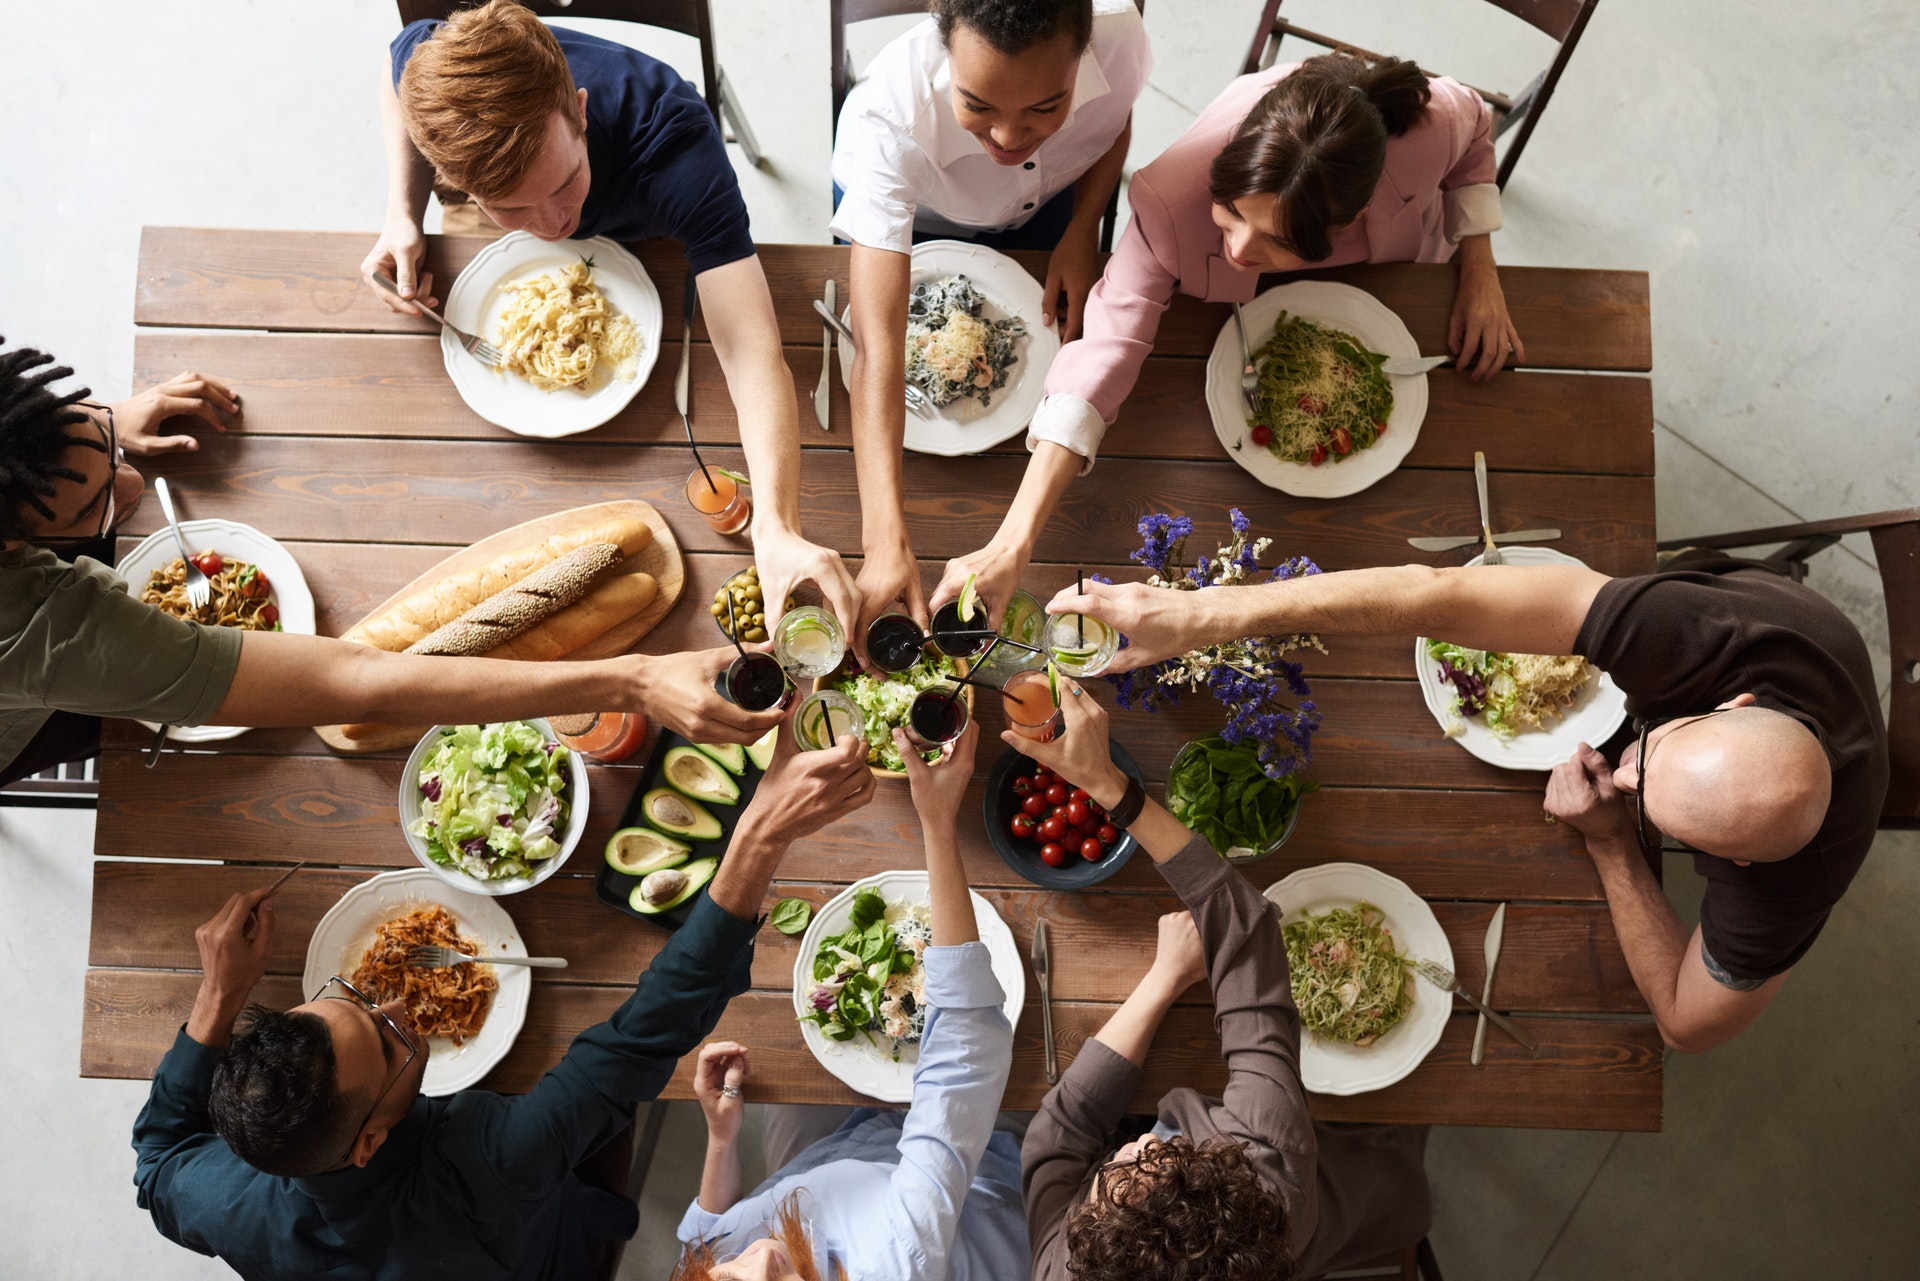 Group of people eating dinner together, toasting with wine